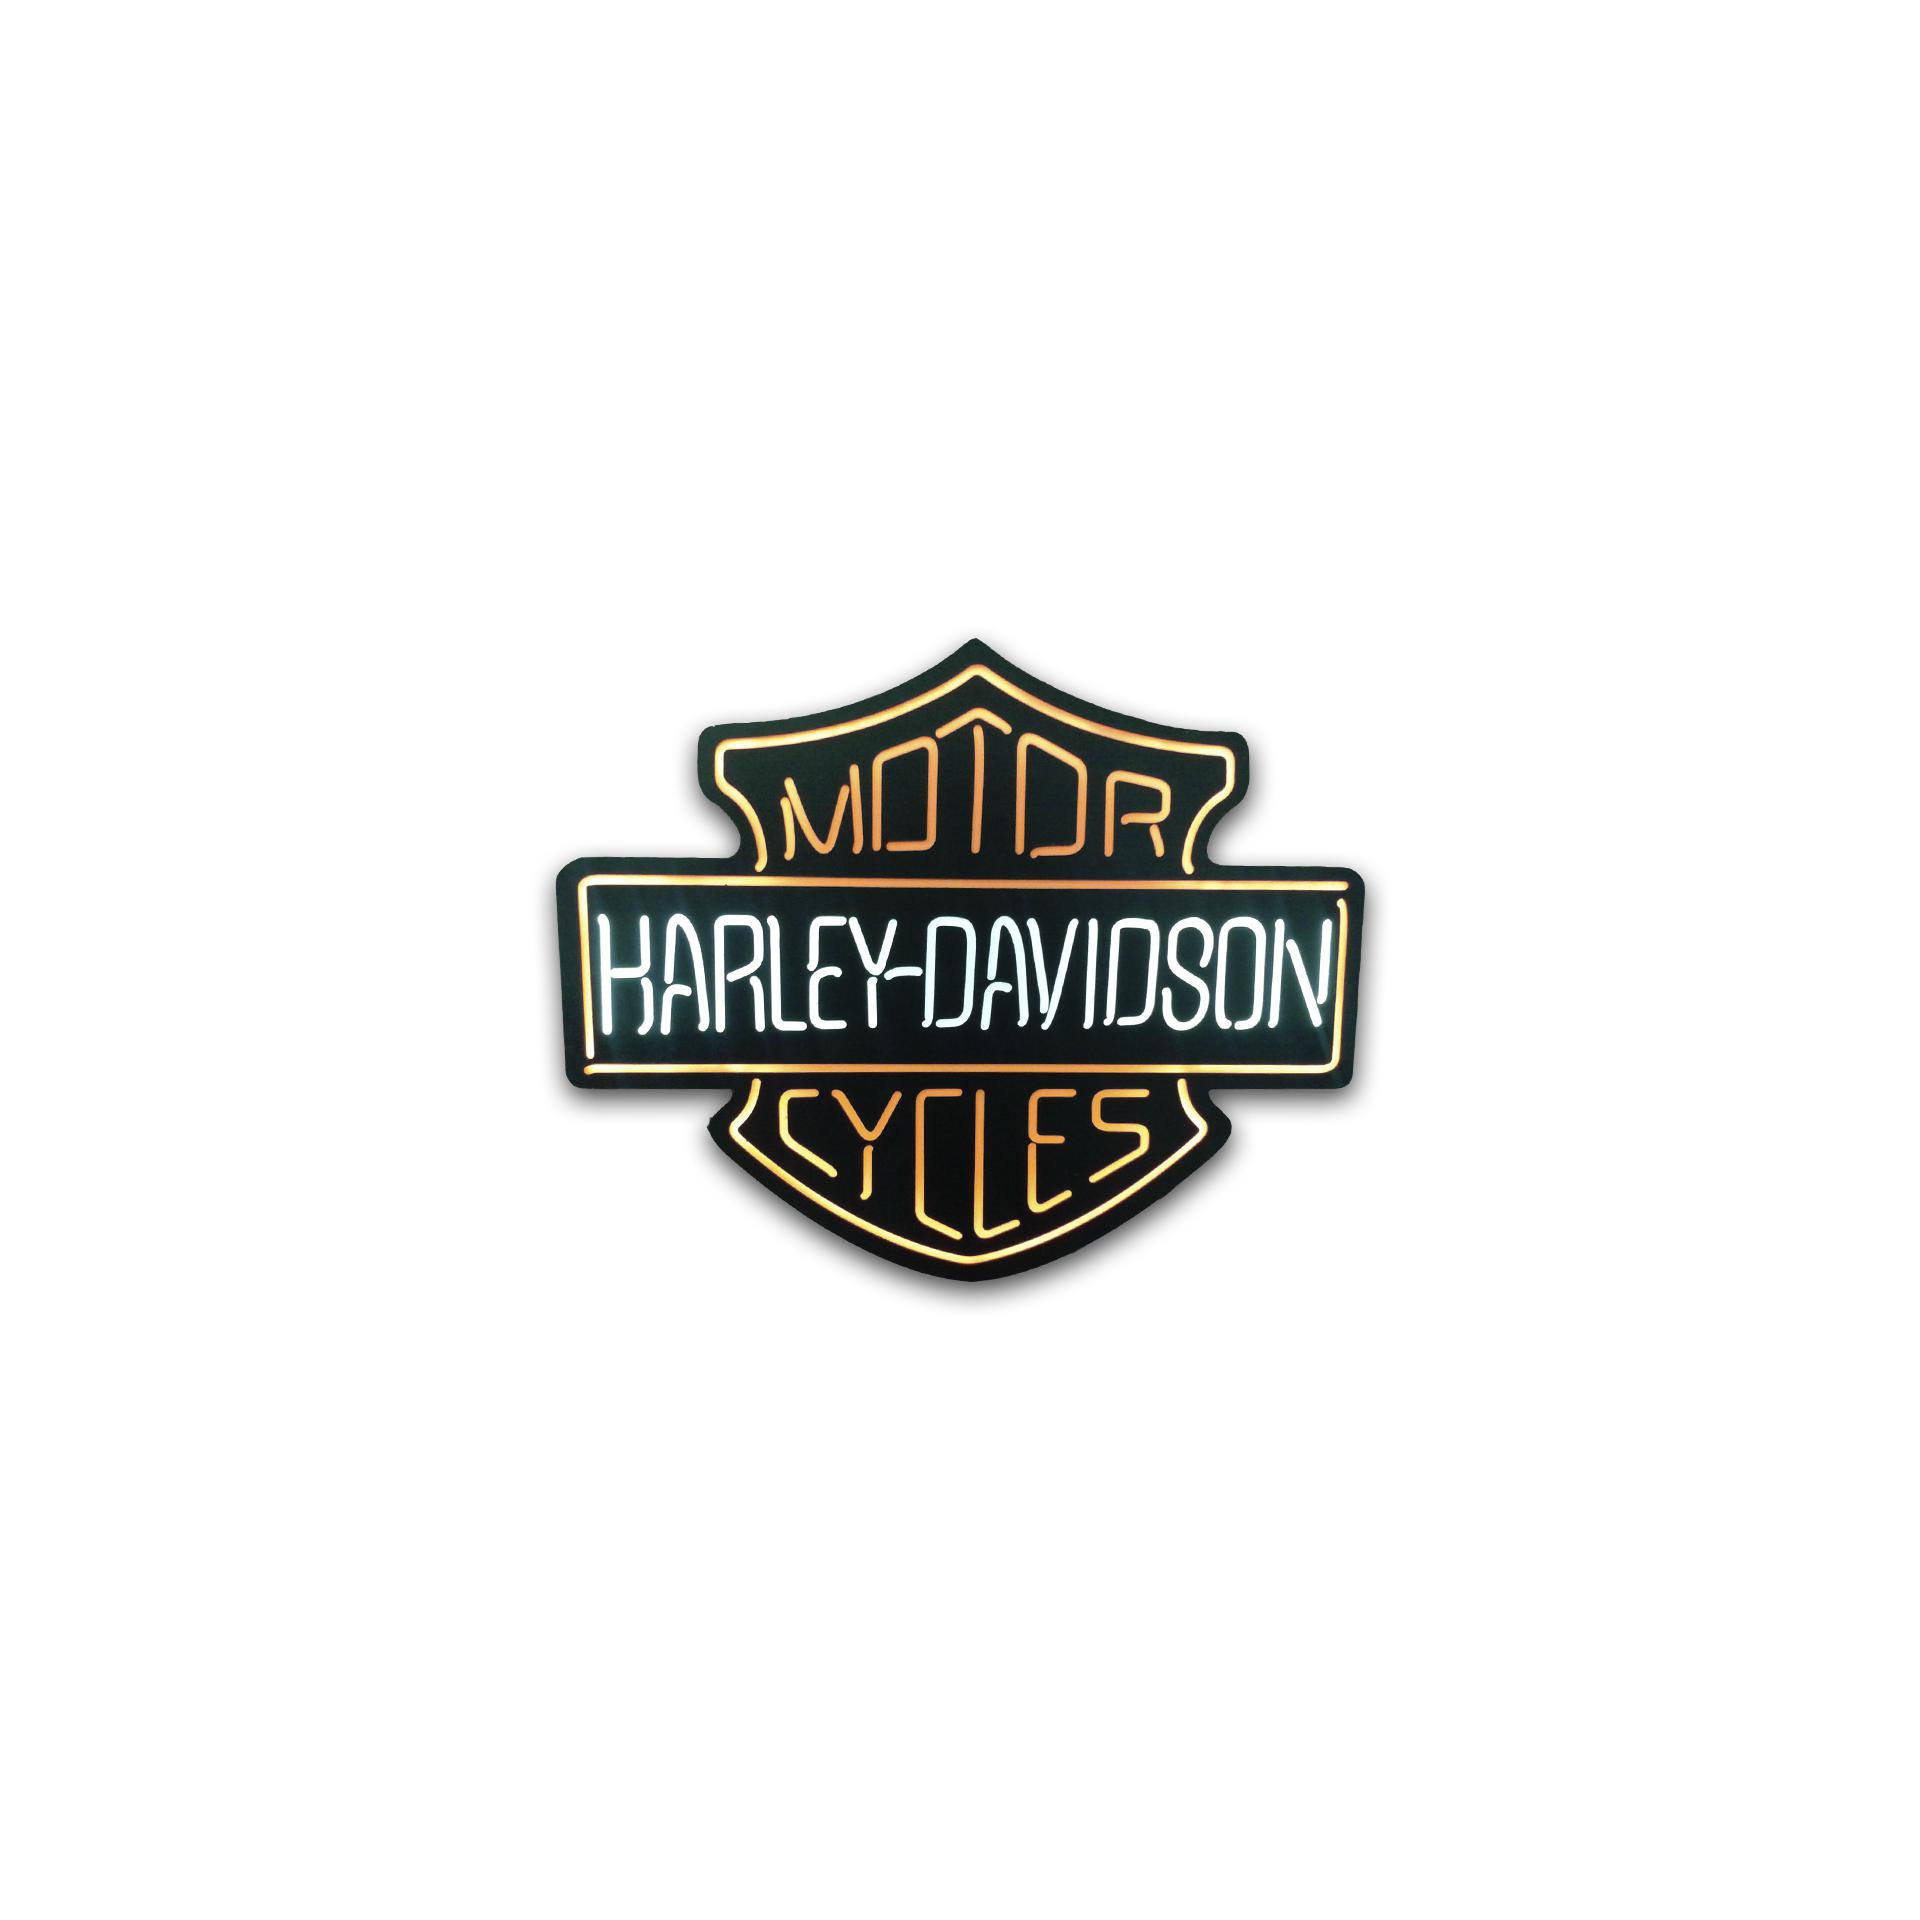 Luminoso Decorativo - Harley Davidson - Mdf